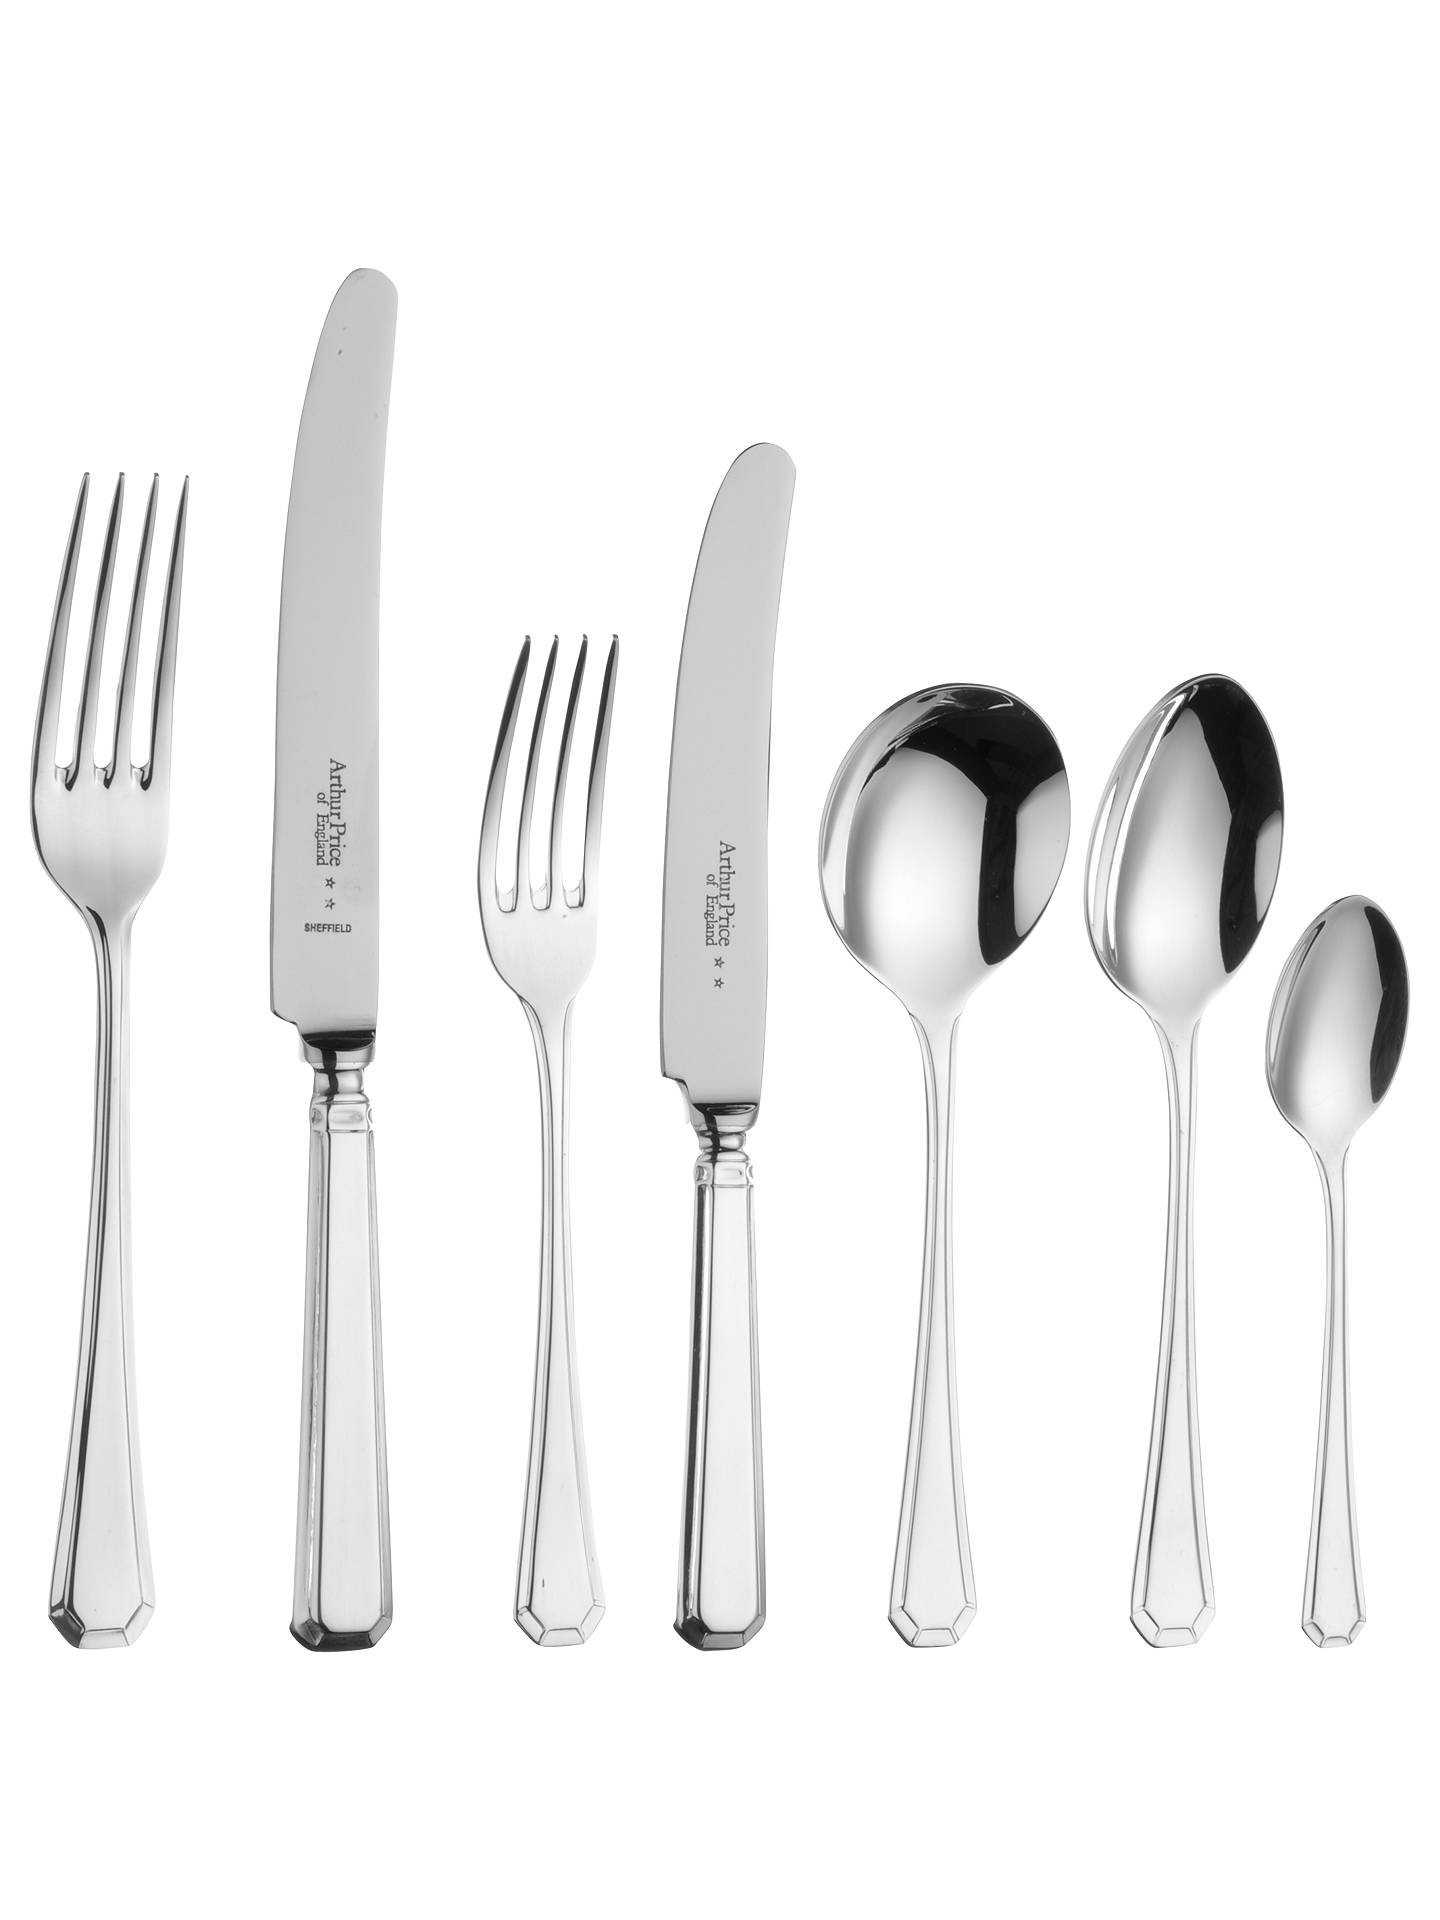 Buy Arthur Price Grecian Stainless Steel Cutlery Set, 56 Piece Online at johnlewis.com